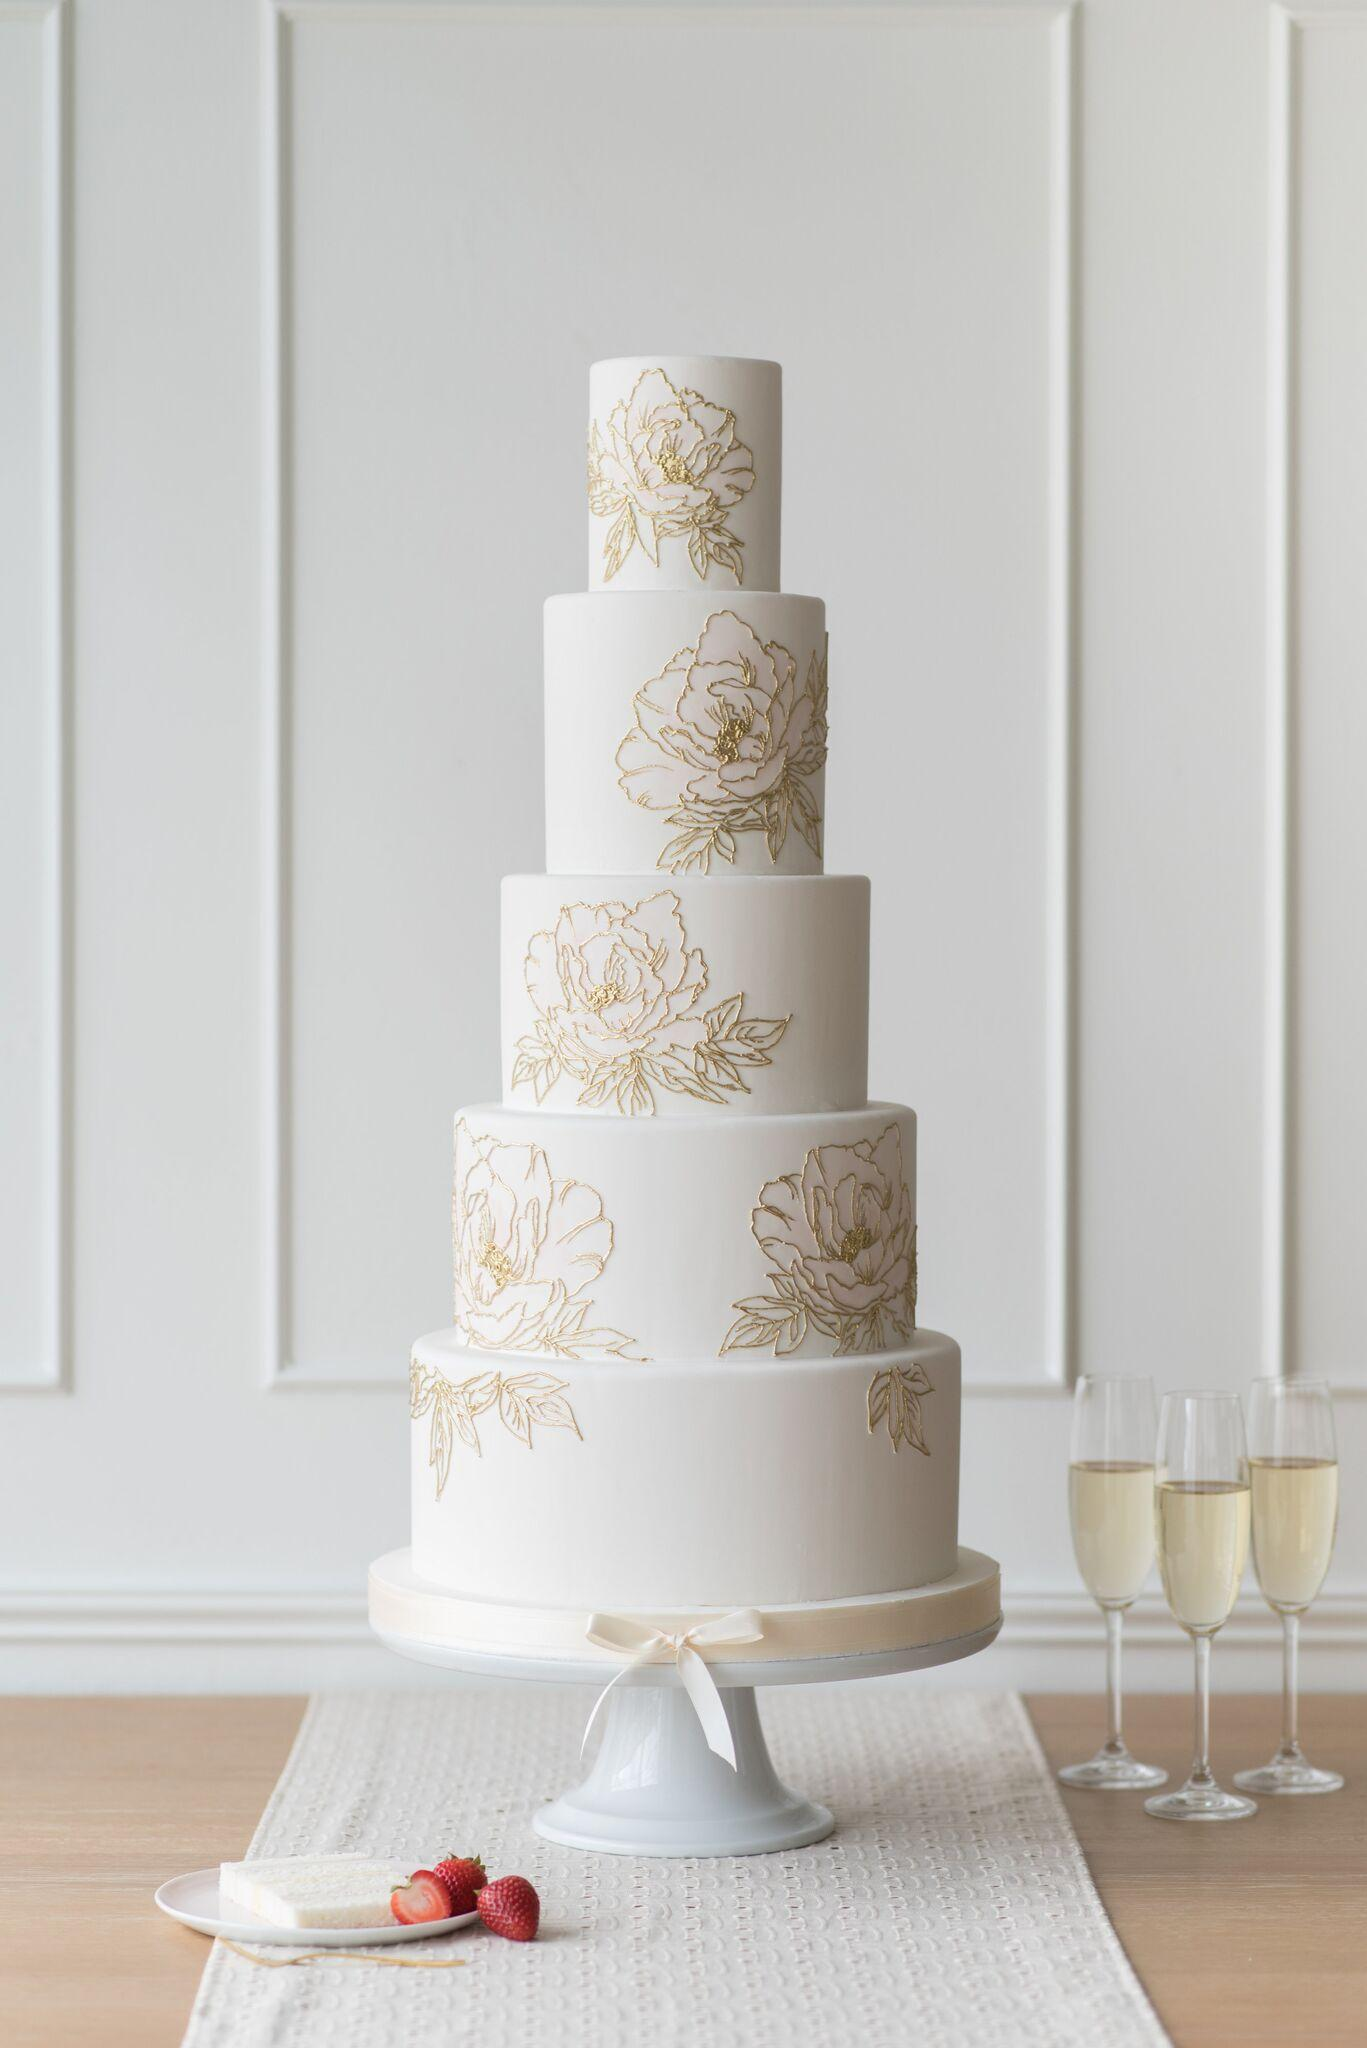 White wedding with stenciled flowers